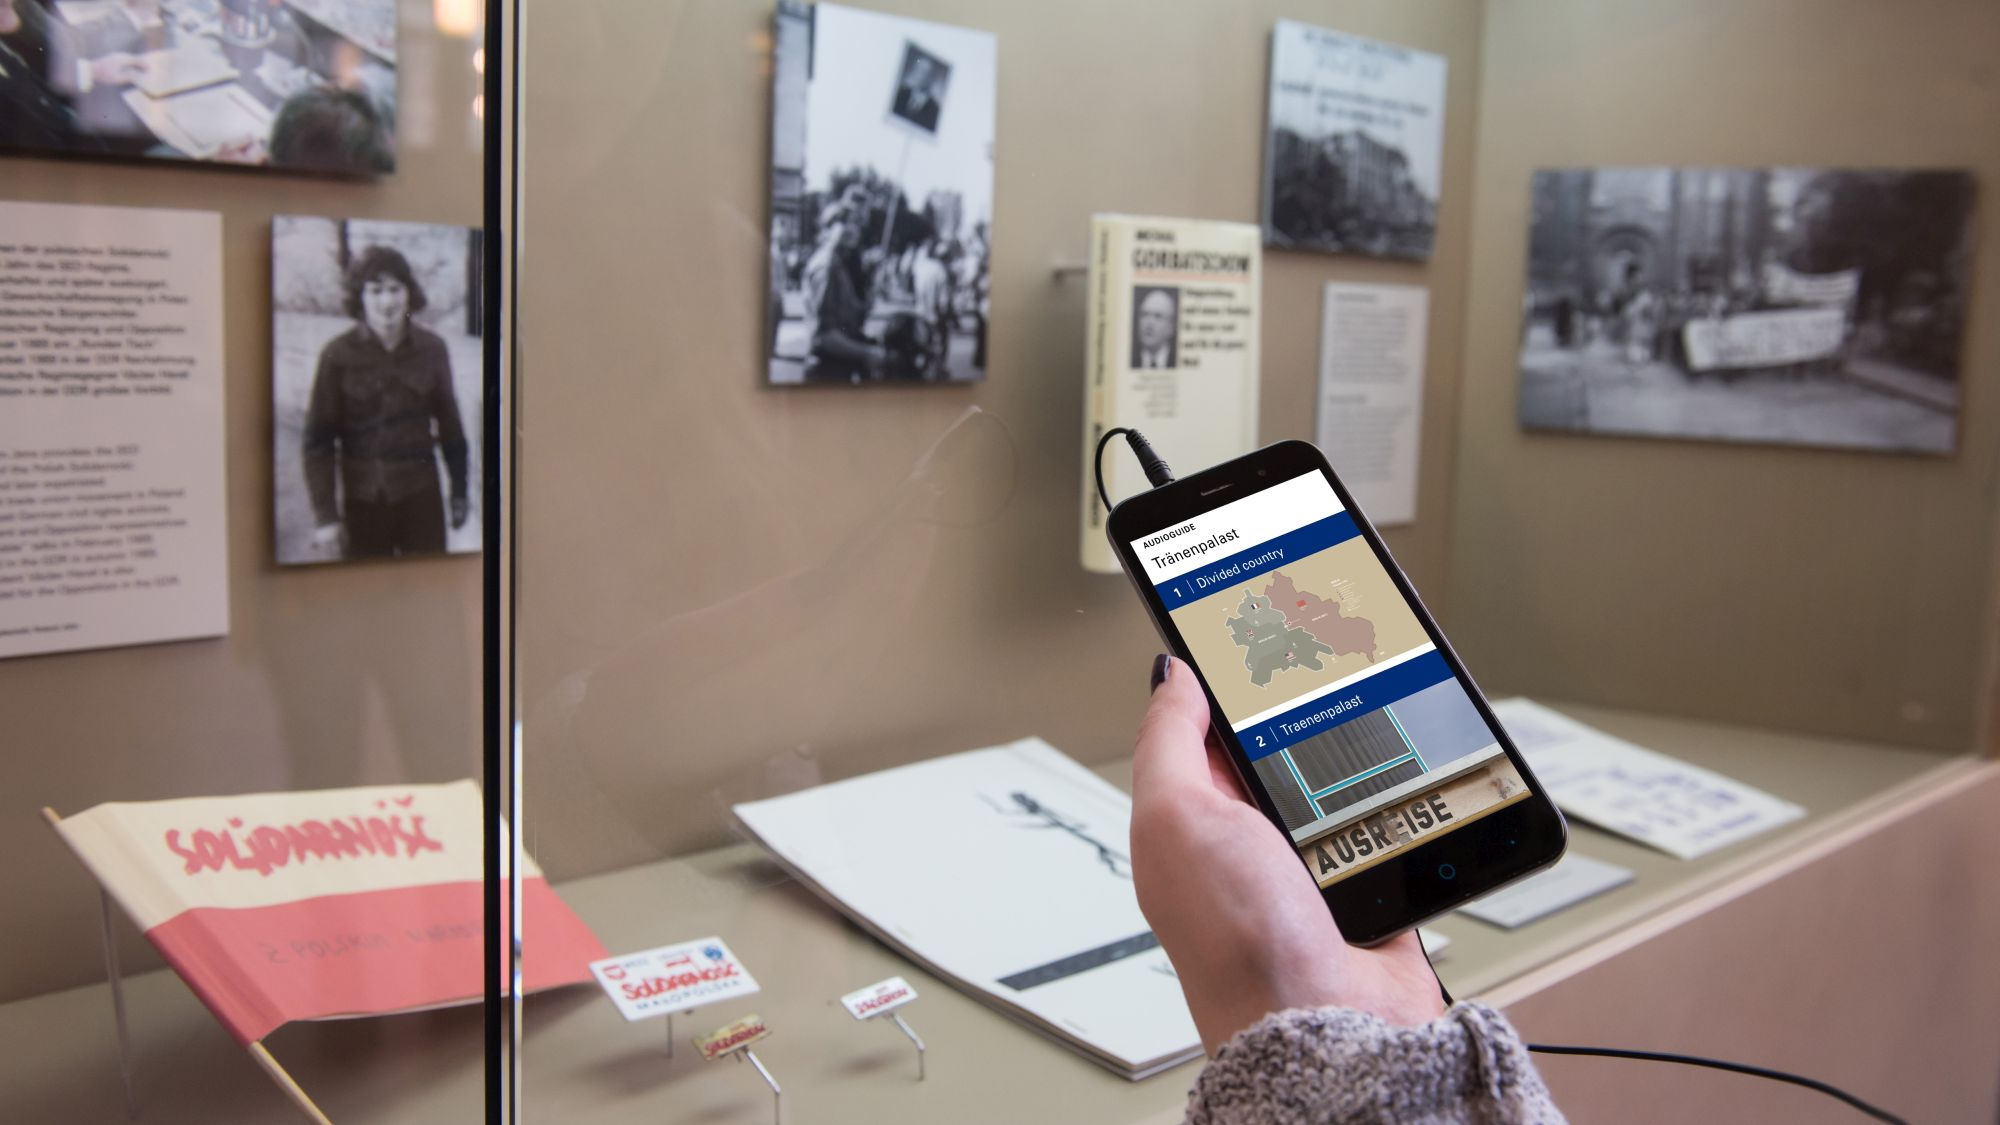 Hand with smartphone, on the display you can see the AudioGuide for the permanent exhibition 'Site of German Division' in the Tränenpalast